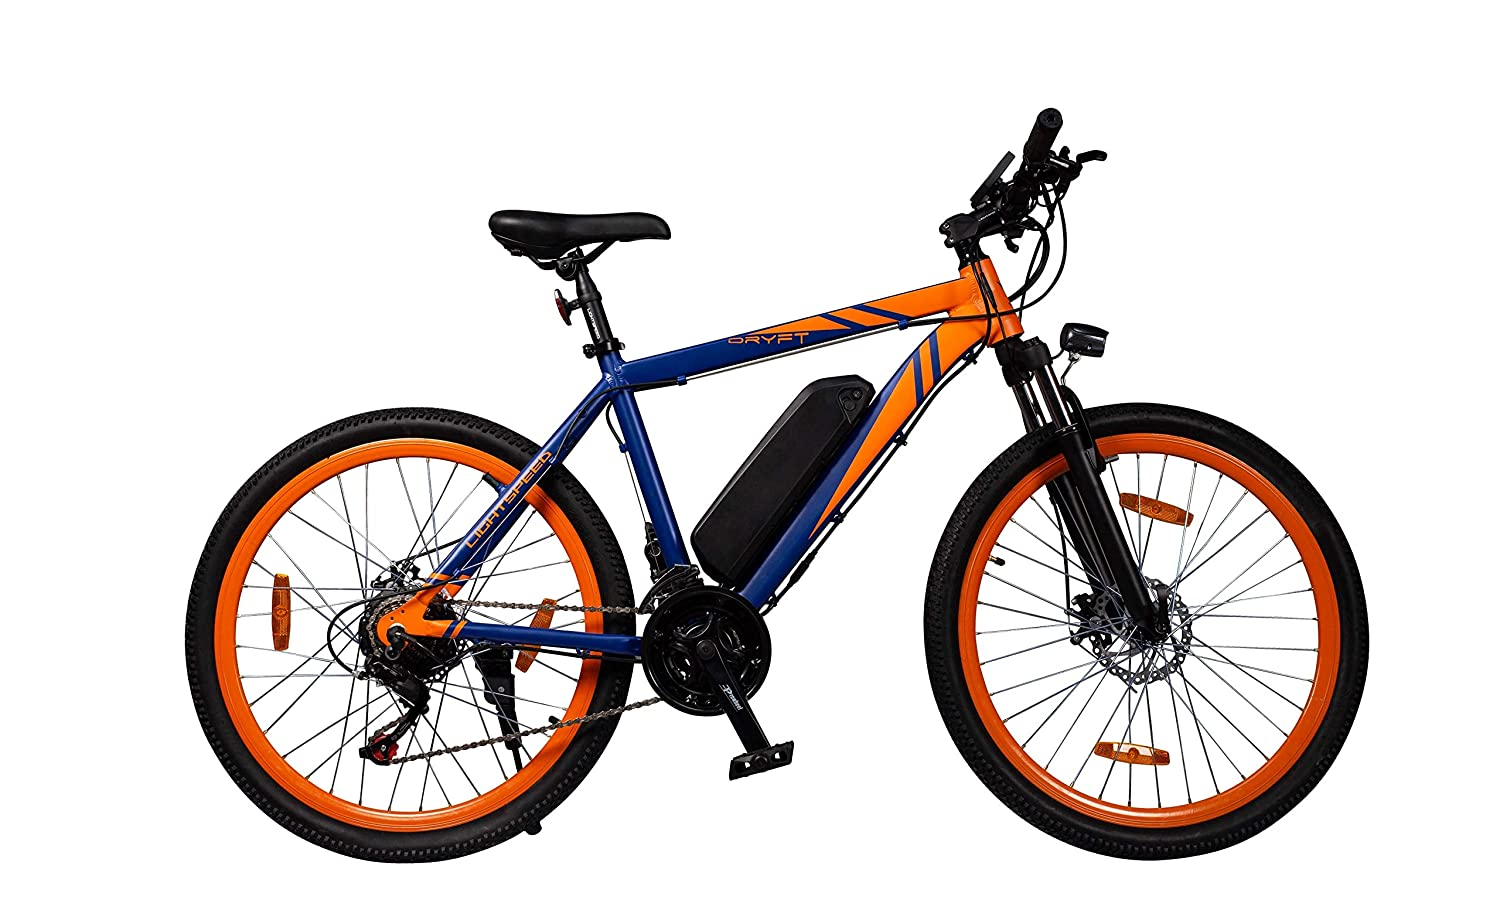 43fd6898f85 LightSpeed Dryft (2019)— Your Futuristic Electric Bicycle | All New  Lightweight ALUMINIUM ALLOY Frame| A Multi-Utility Bike with Pedal Boost  and Twist ...